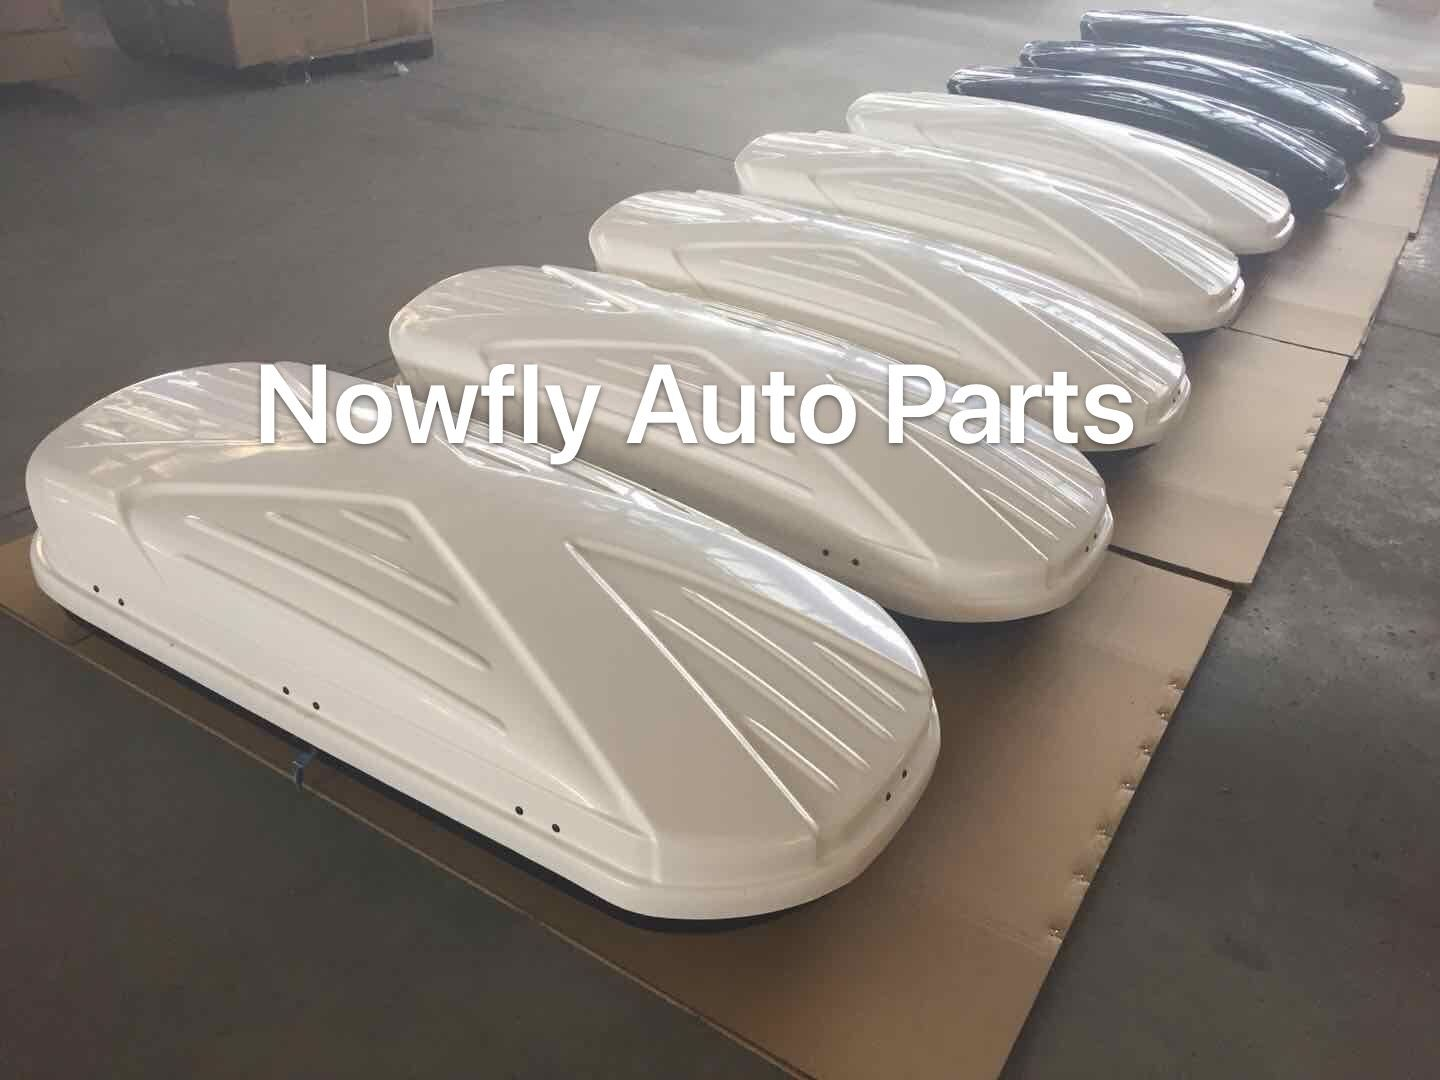 Decorative Accessories Abs Car Roof Boxes Car Top Box Carrier Cargo Box Car Roof Box Car Roof Racks Roof Luggage Carrier